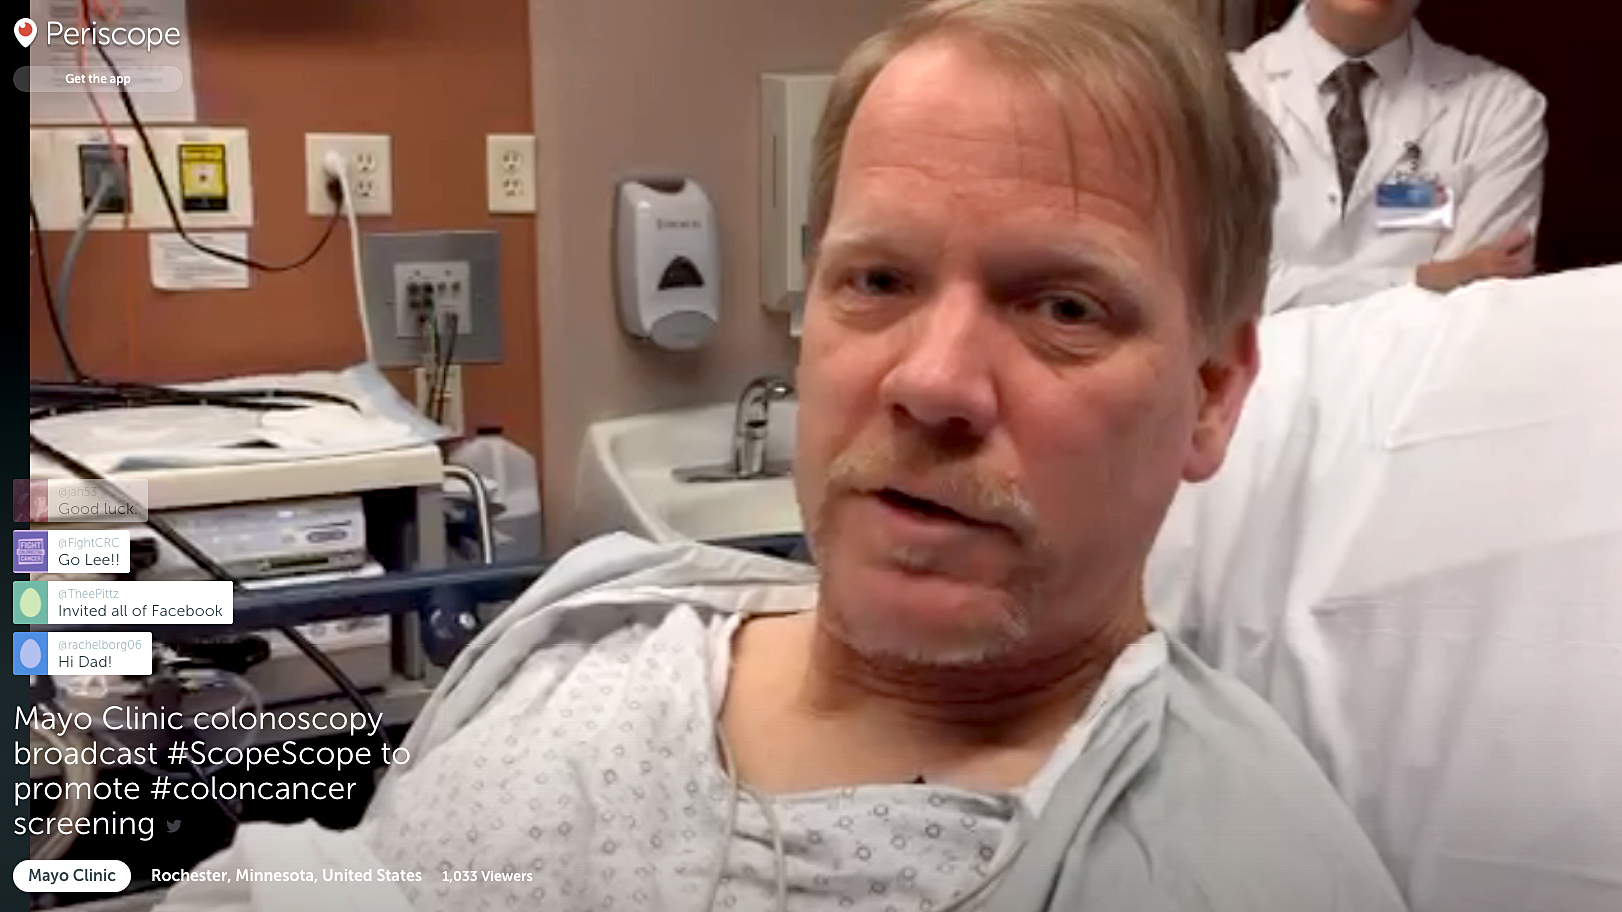 This Man Just Got A Colonoscopy Live On Periscope